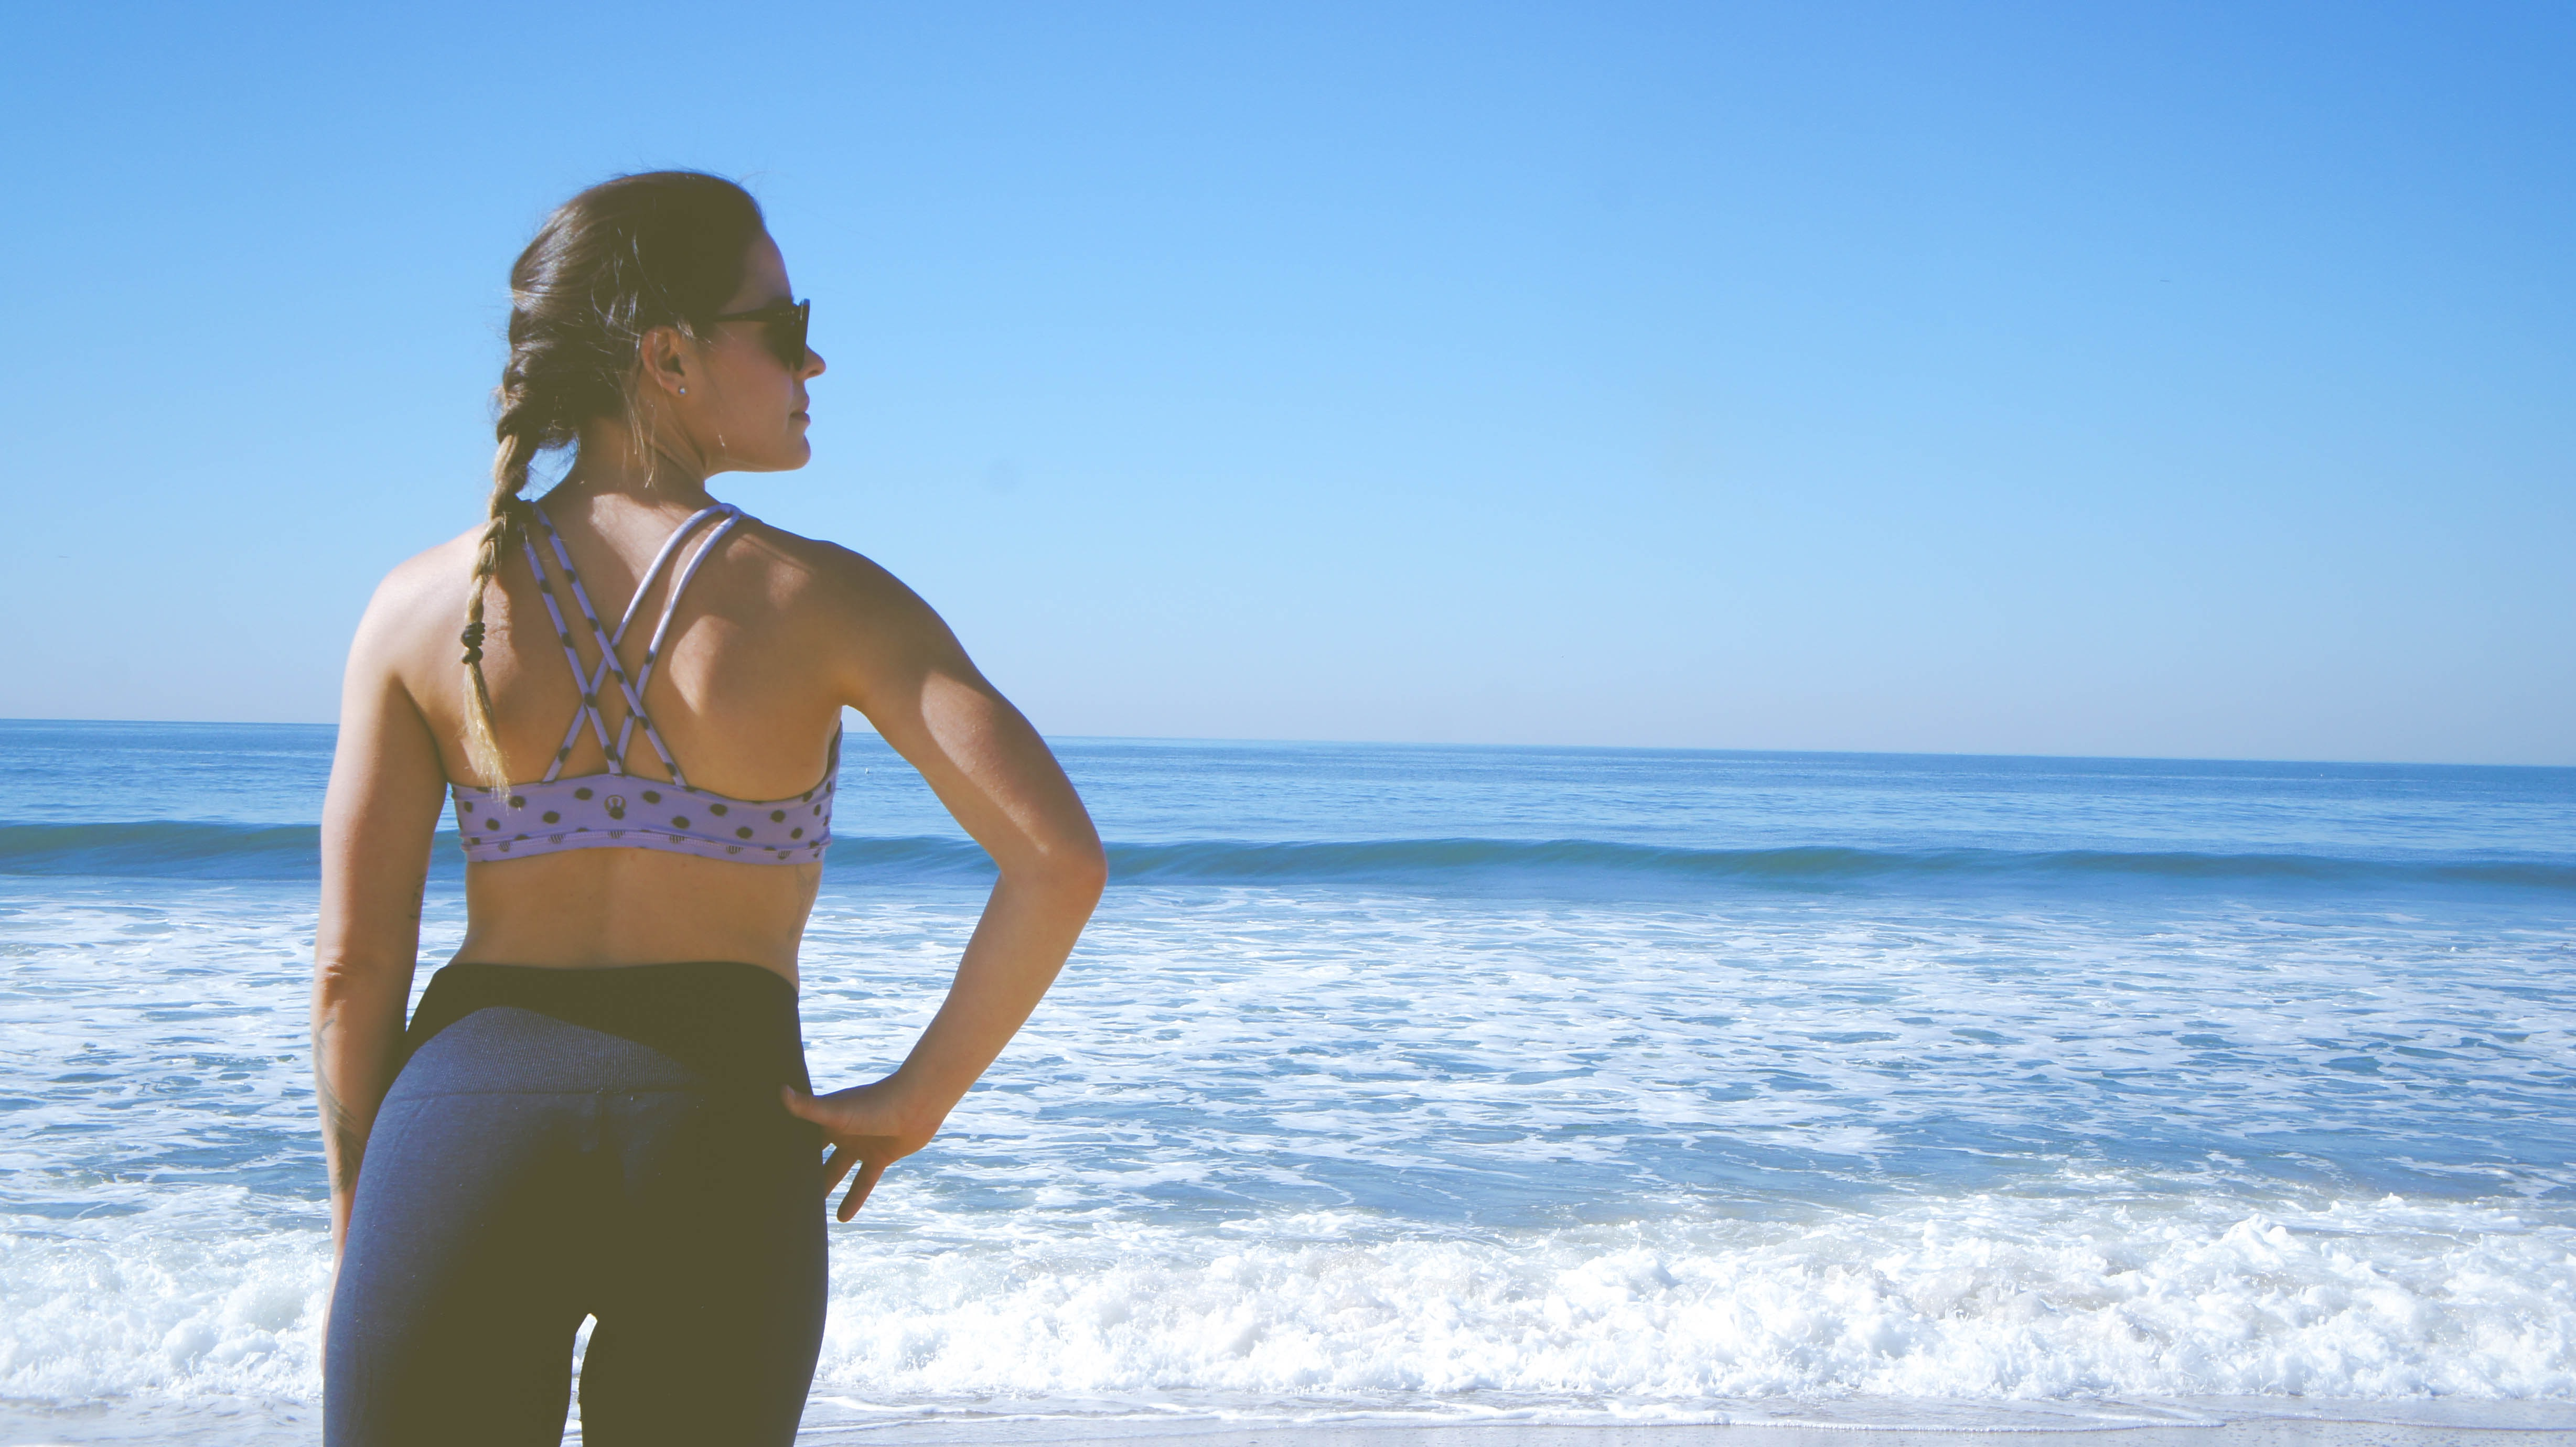 A woman wearing leggings, a sports bra, and sunglasses with a braid in her hair in Manhattan Beach